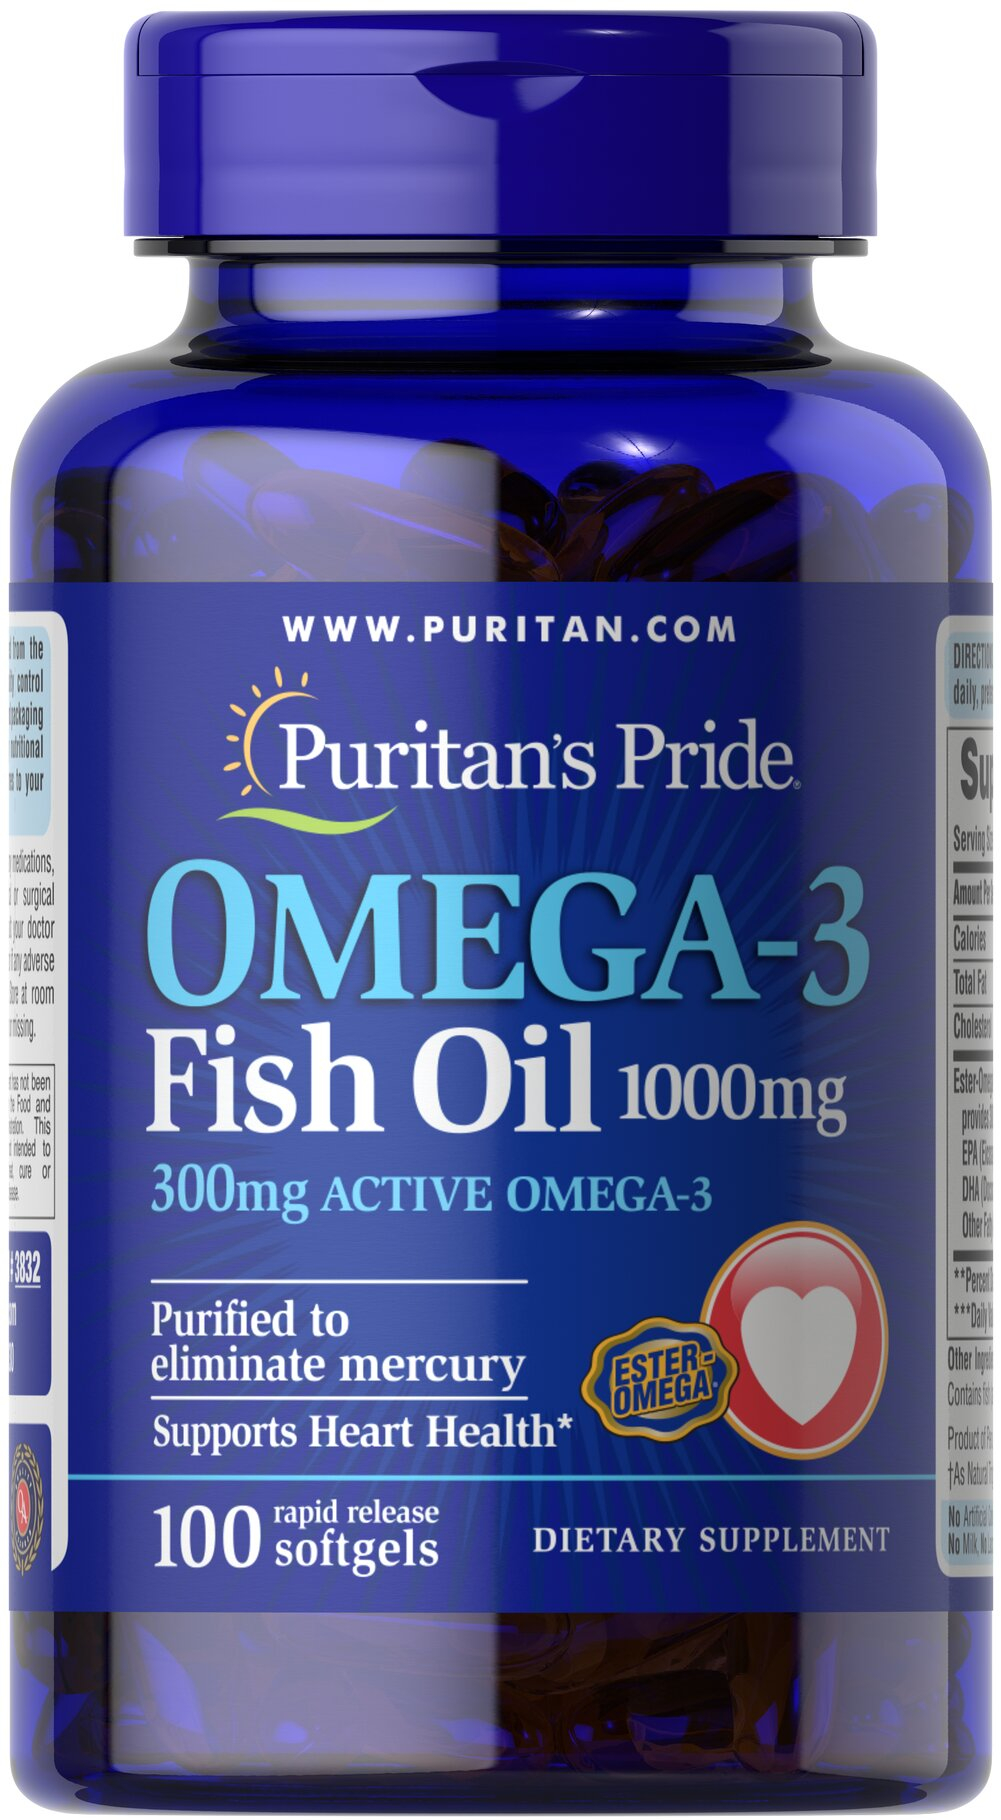 Omega-3 Fish Oil 1000 mg (300 mg Active Omega-3)  100 Softgels 1000 mg $9.99